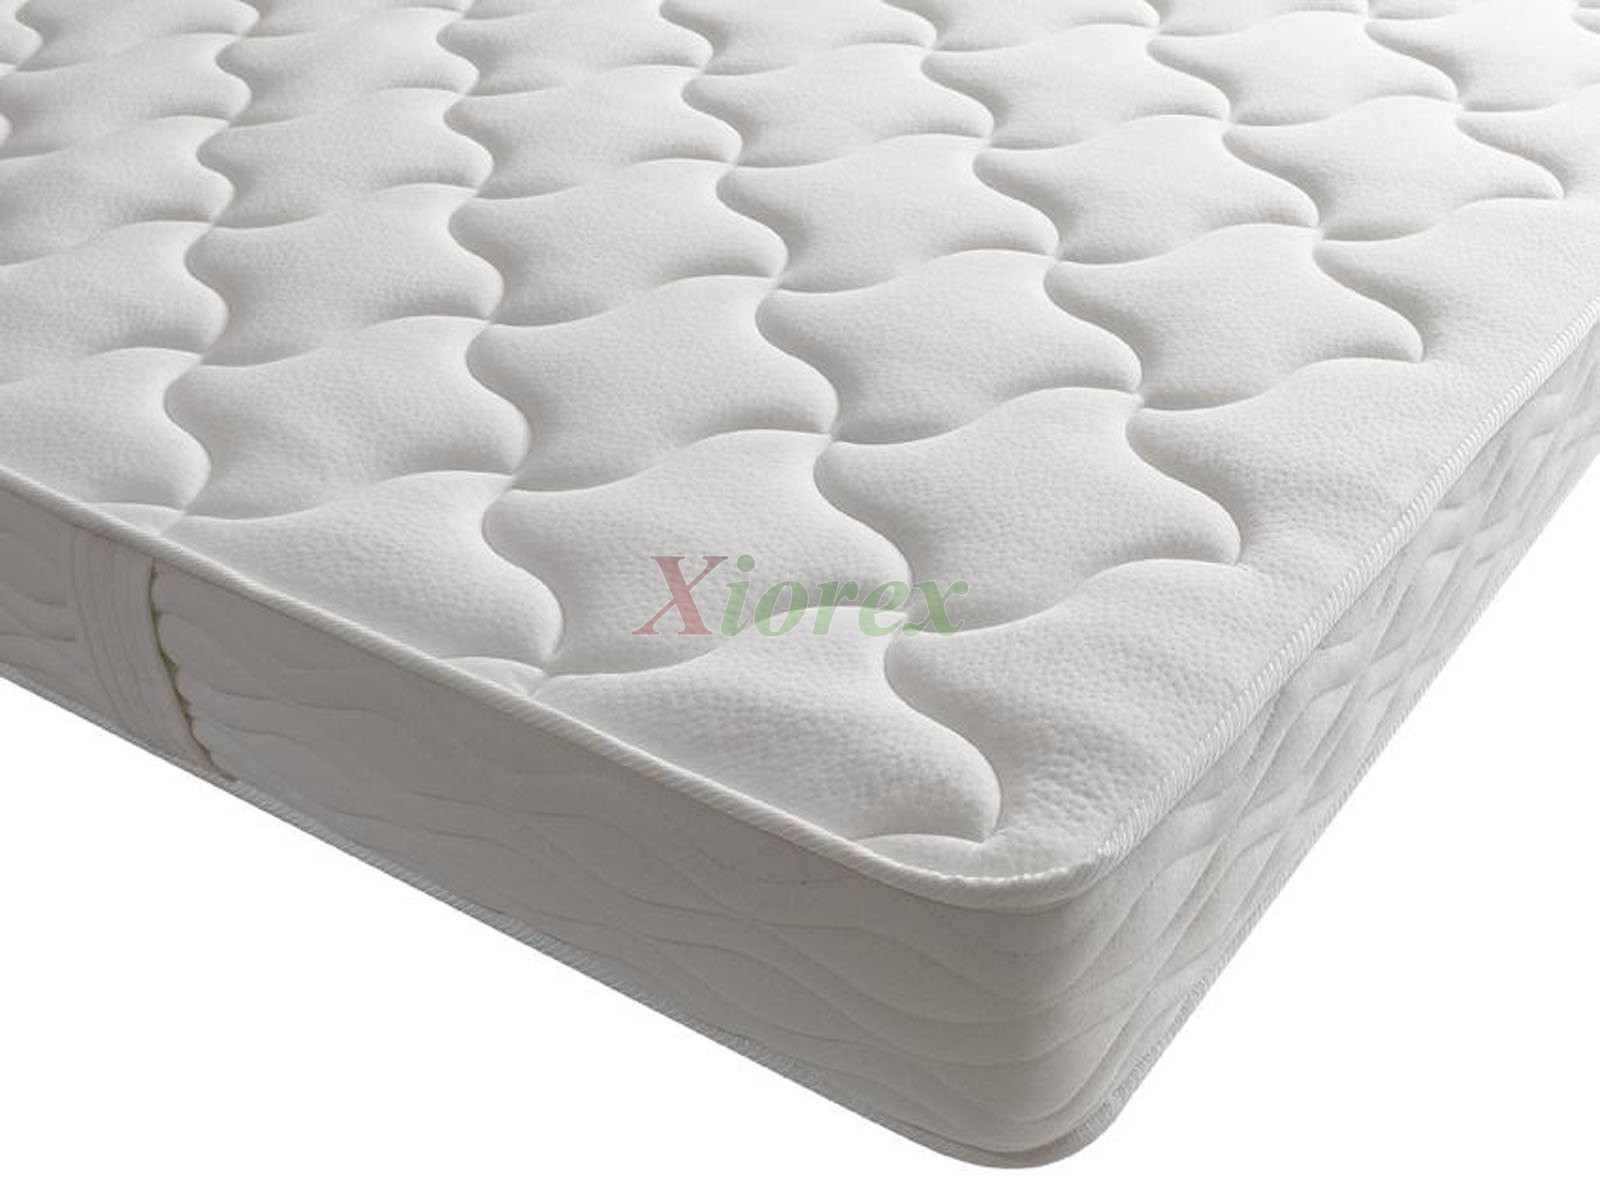 gel p mattress mattresses in home lane depot latex foam the king